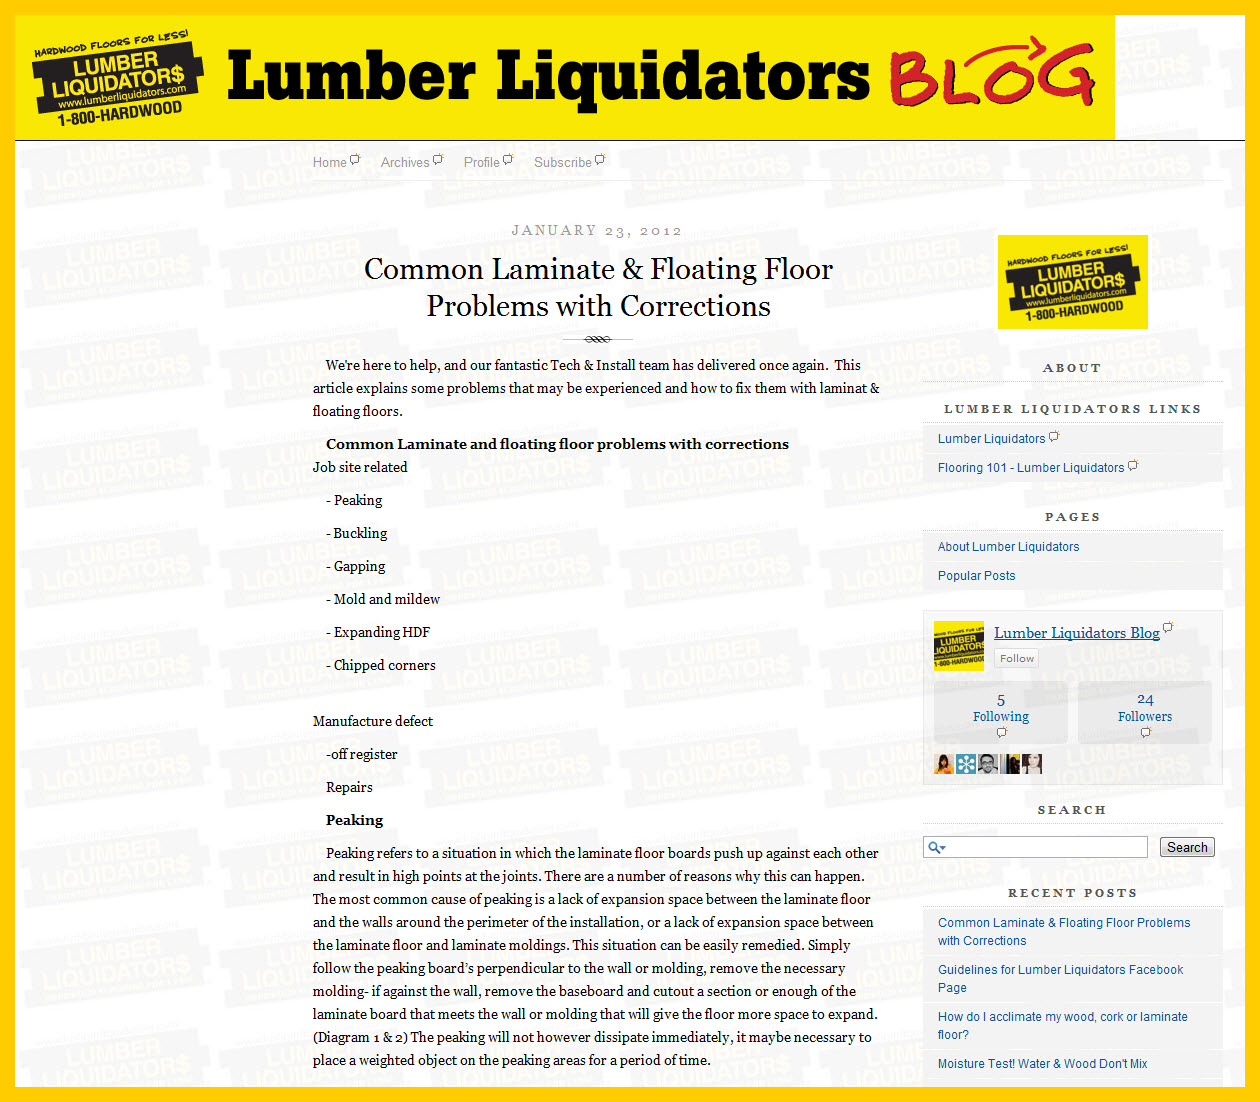 Social Flooring Index: Lumber Liquidators Blog